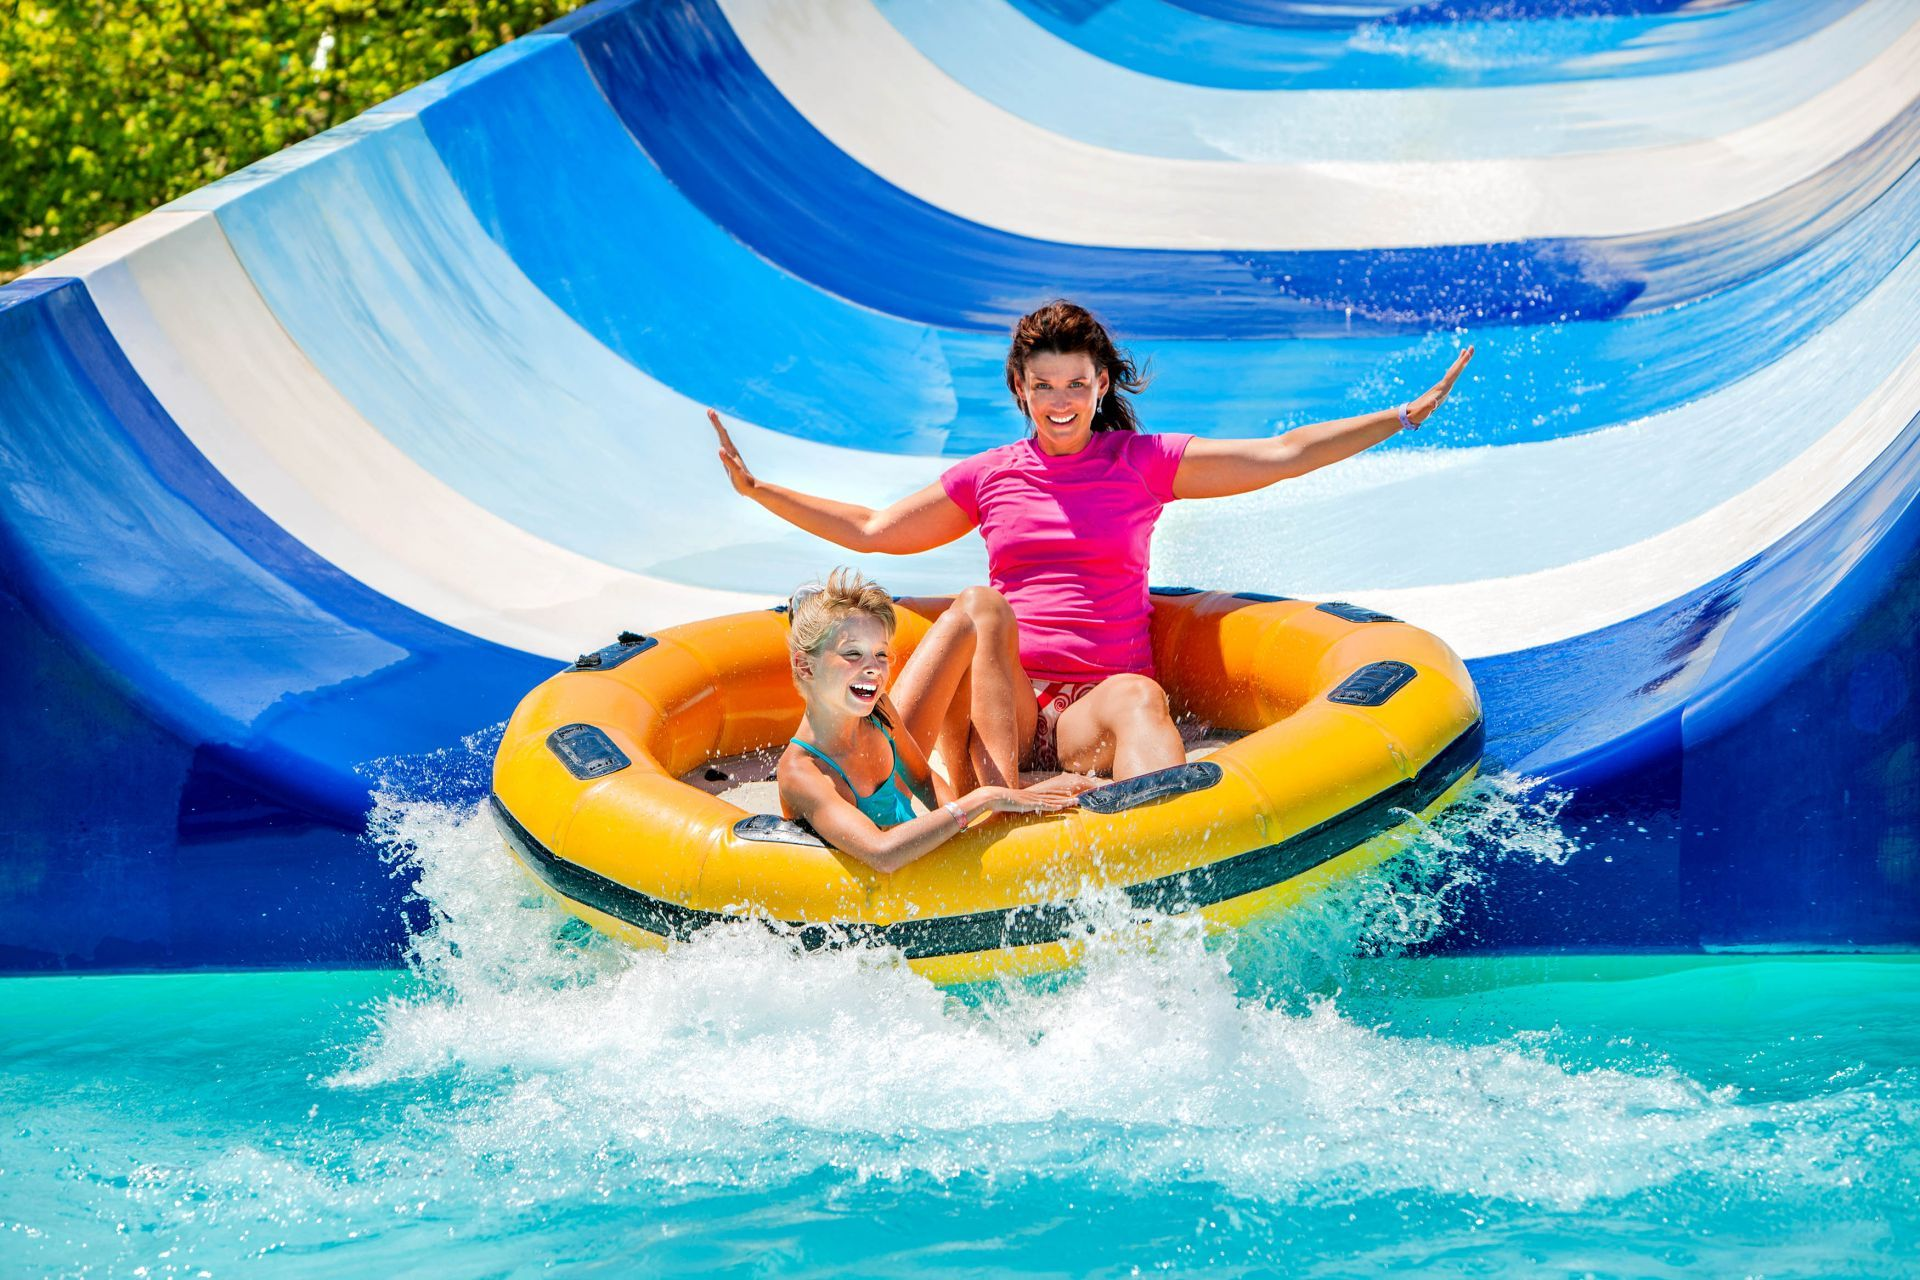 Greece other businesses: Waterparks